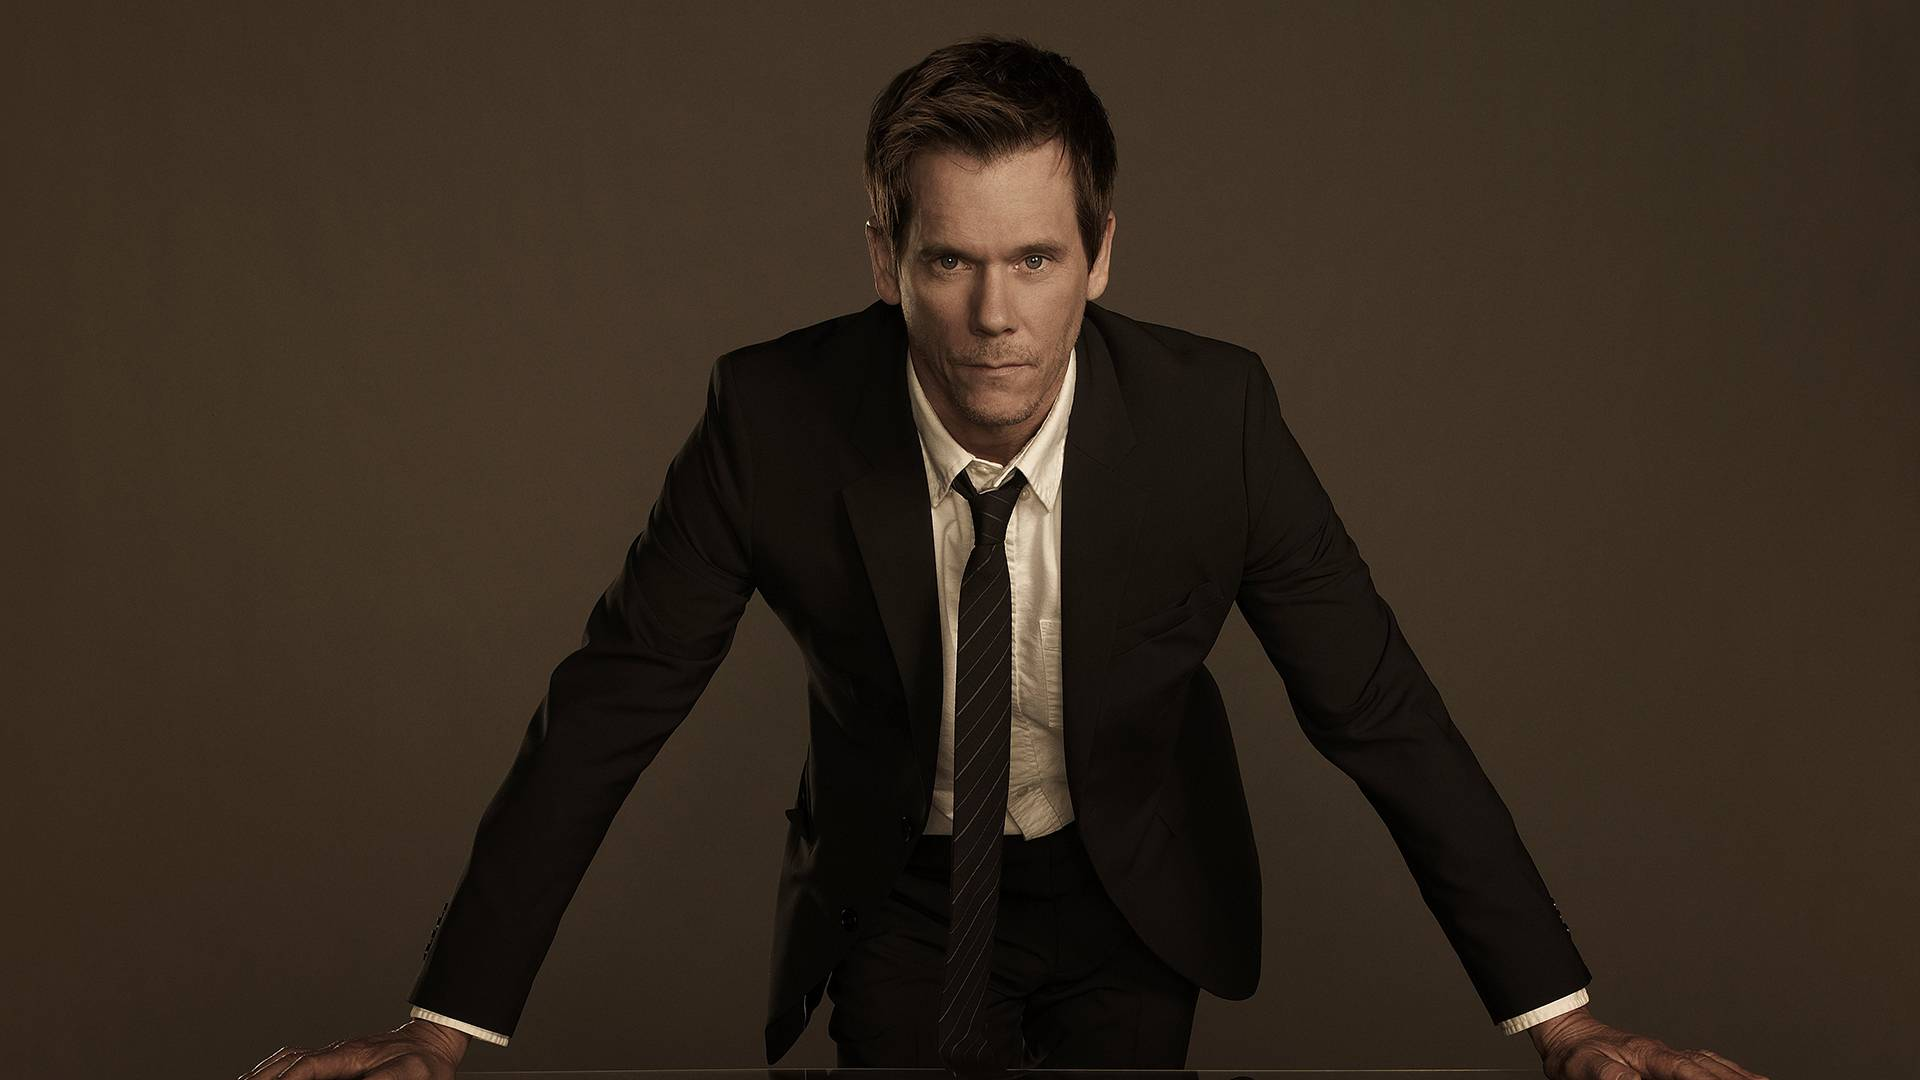 Kevin Bacon HD Wallpapers 7wallpapersnet 1920x1080